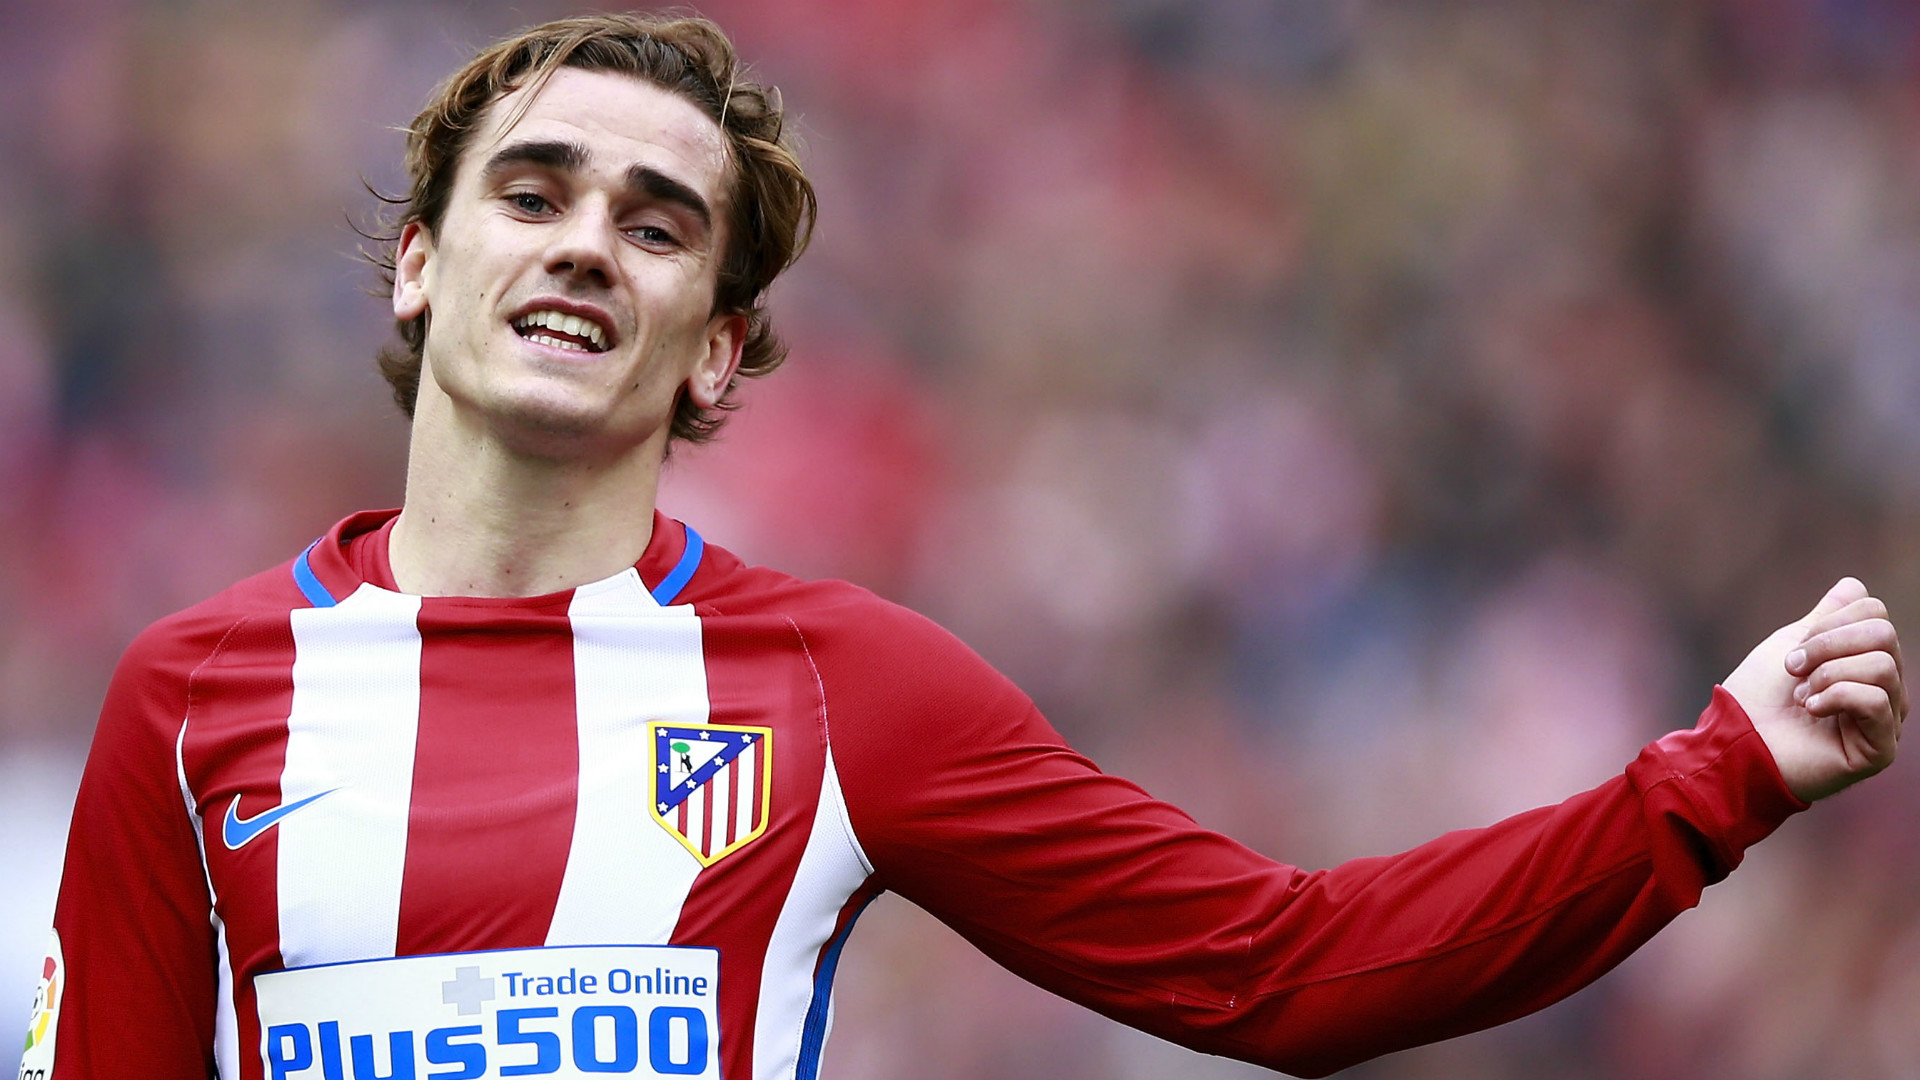 Antoine Griezmann profile The Atletico Madrid star s rise to